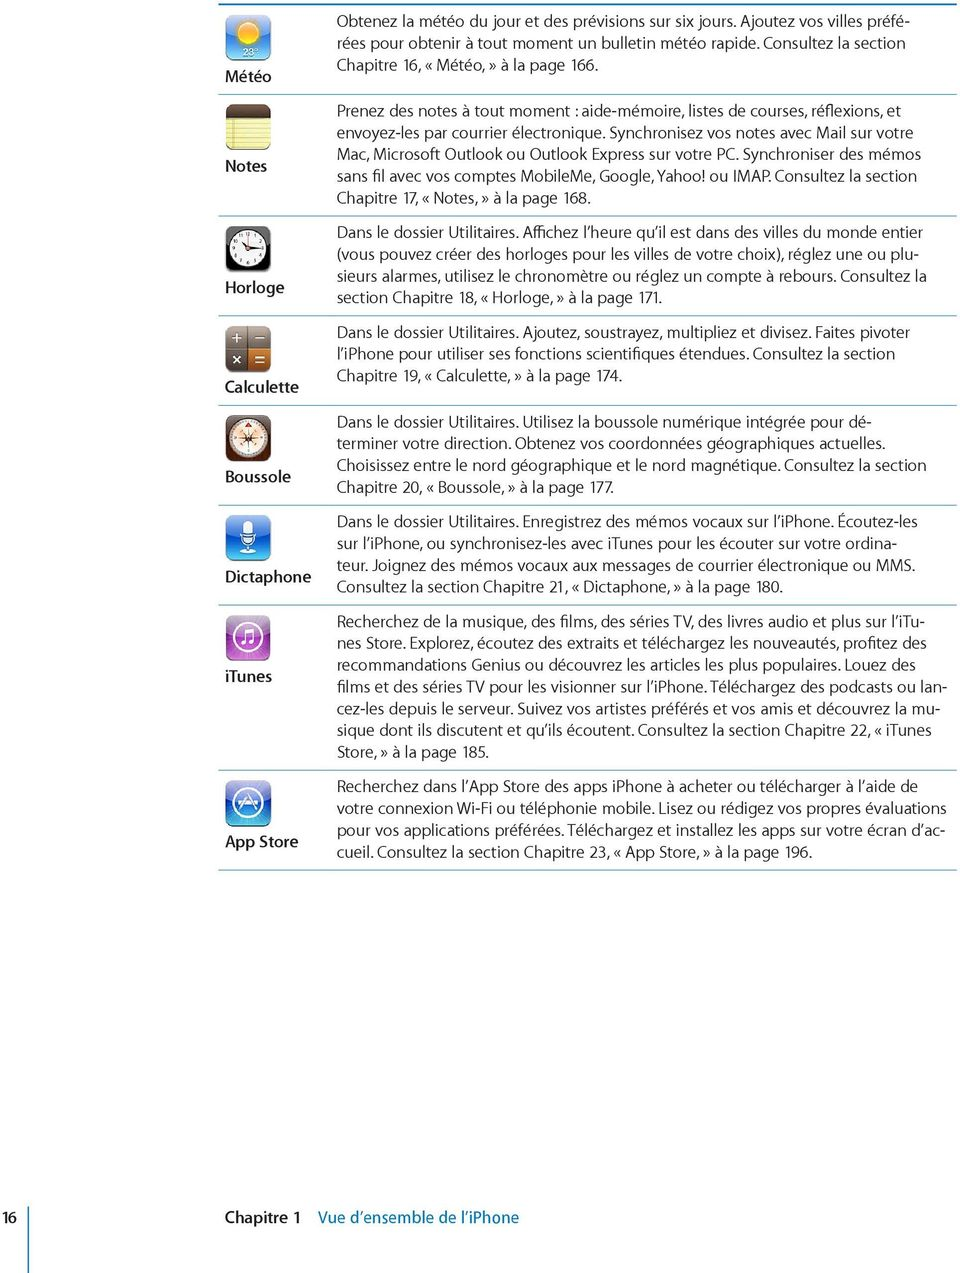 how to make a google doc a pdf on iphone